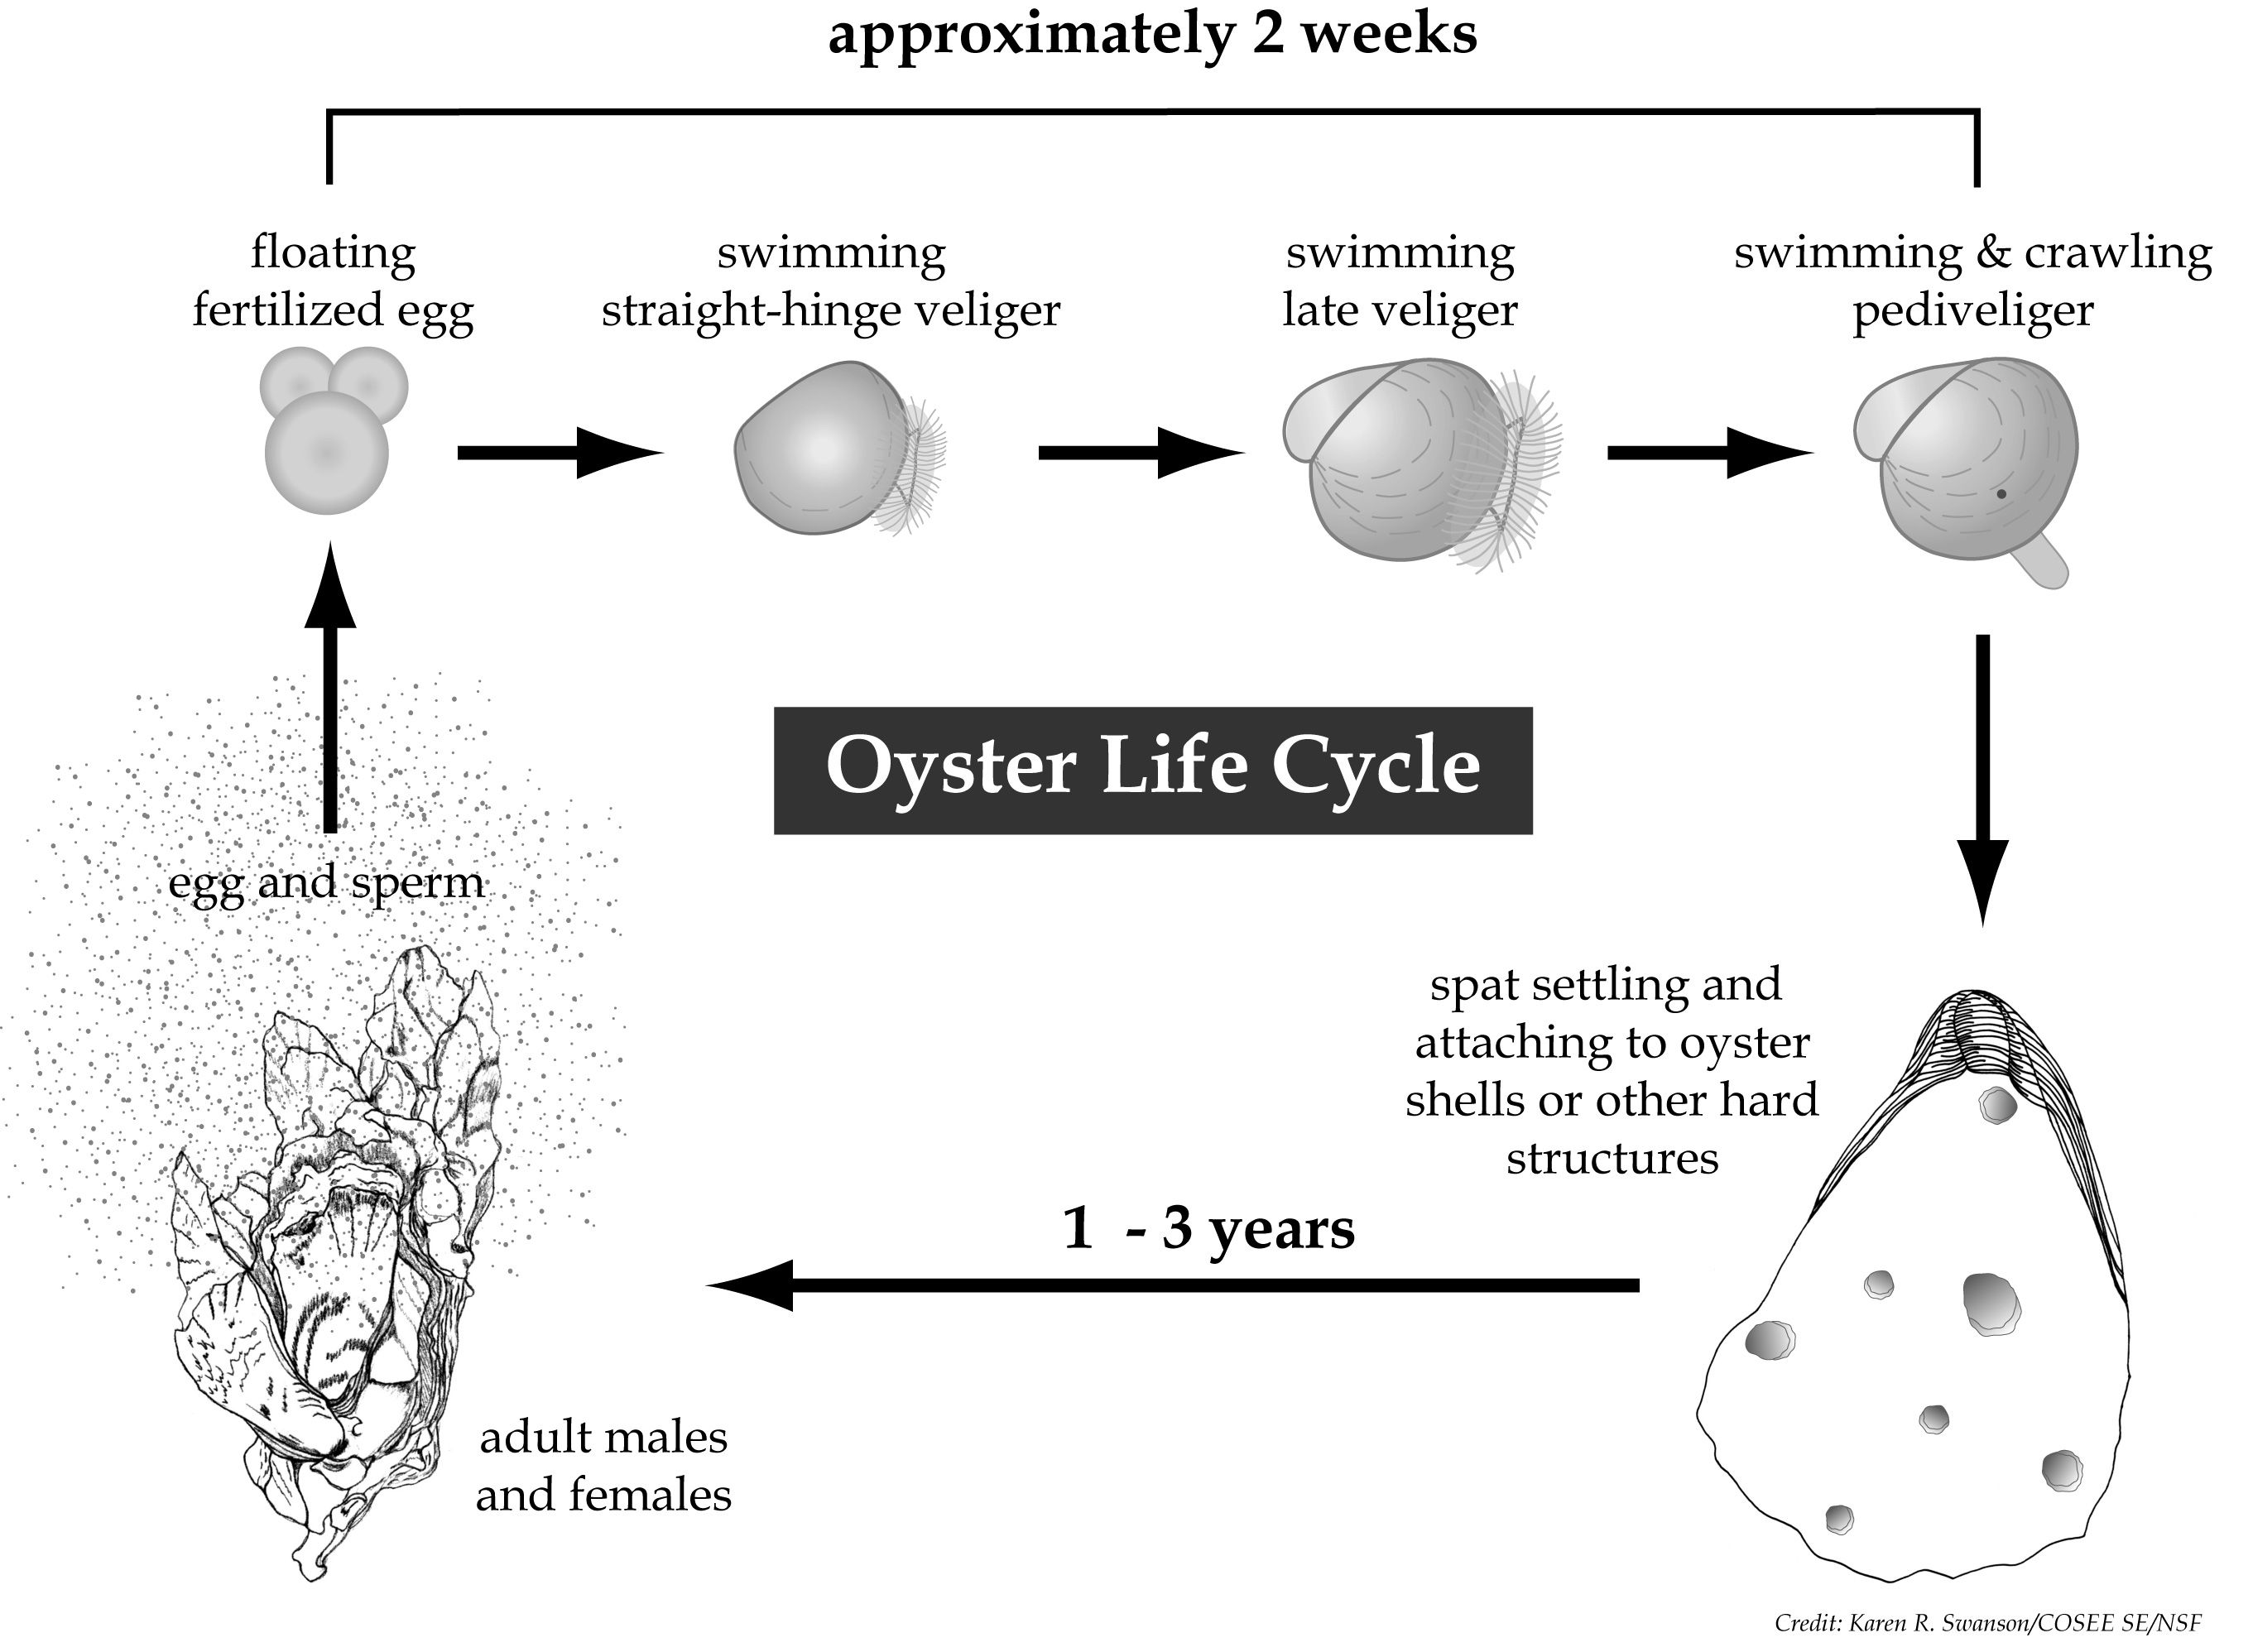 clam diagram labeled kubota bx2200 wiring figure of the oyster life cycle from egg to veliger larva